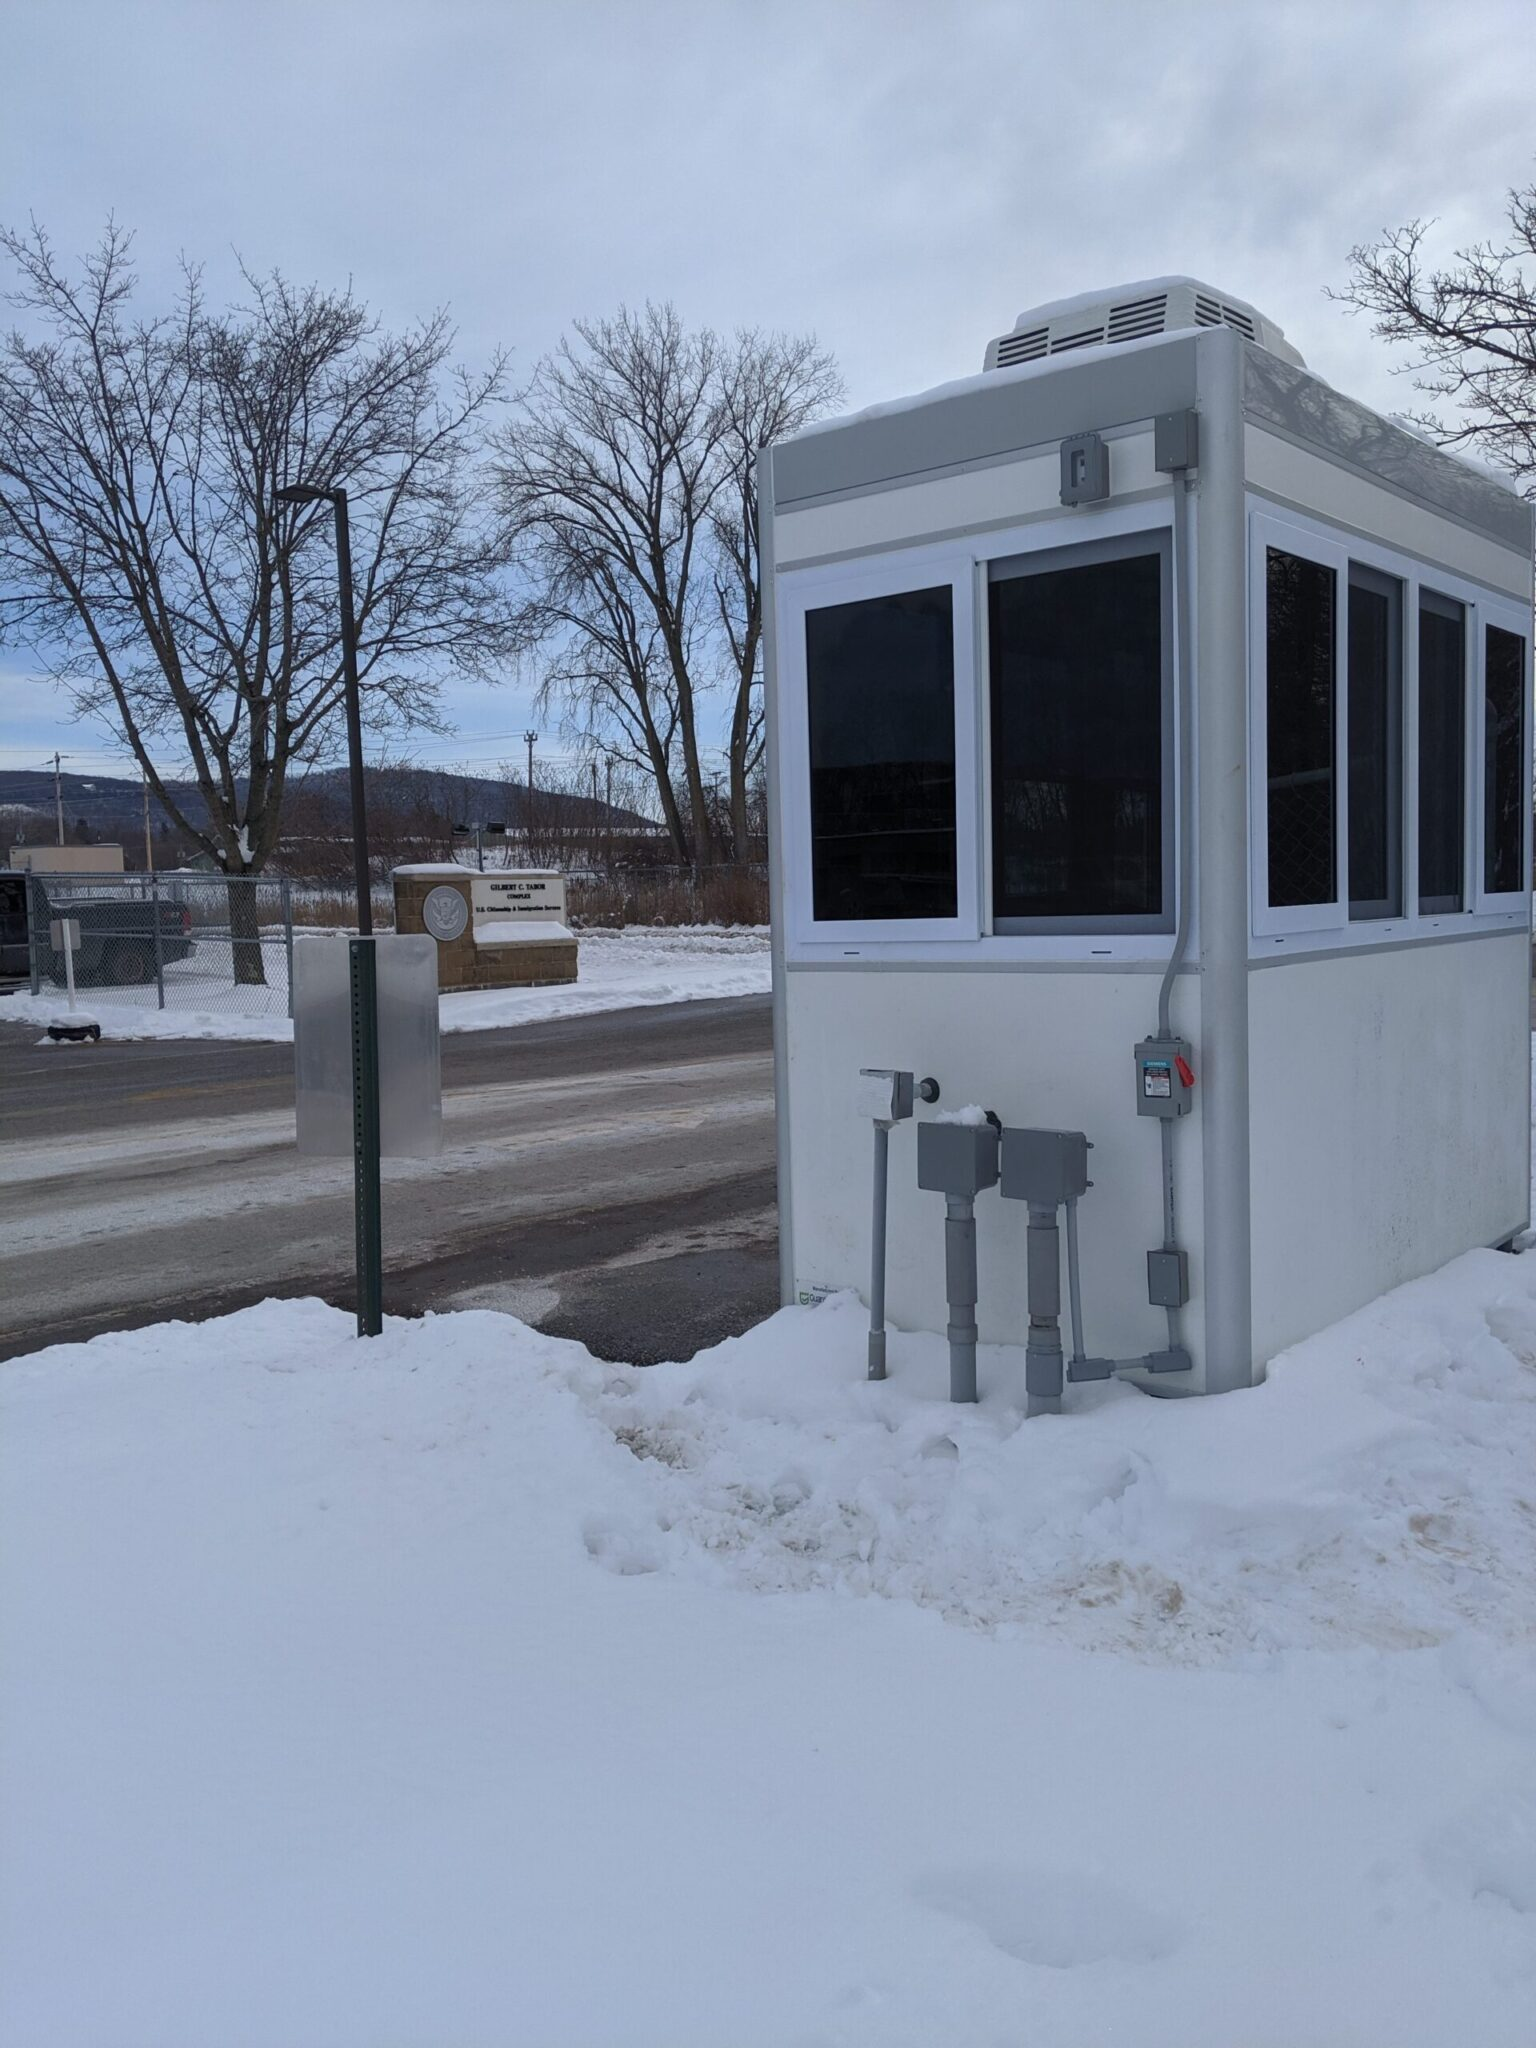 4x8 Entrance Booth in St Albans, VT with Roof Mounted HVAC, Tinted Windows, Outside LED Spotlights and Exterior Duplex Ethernet Port and Phone Line